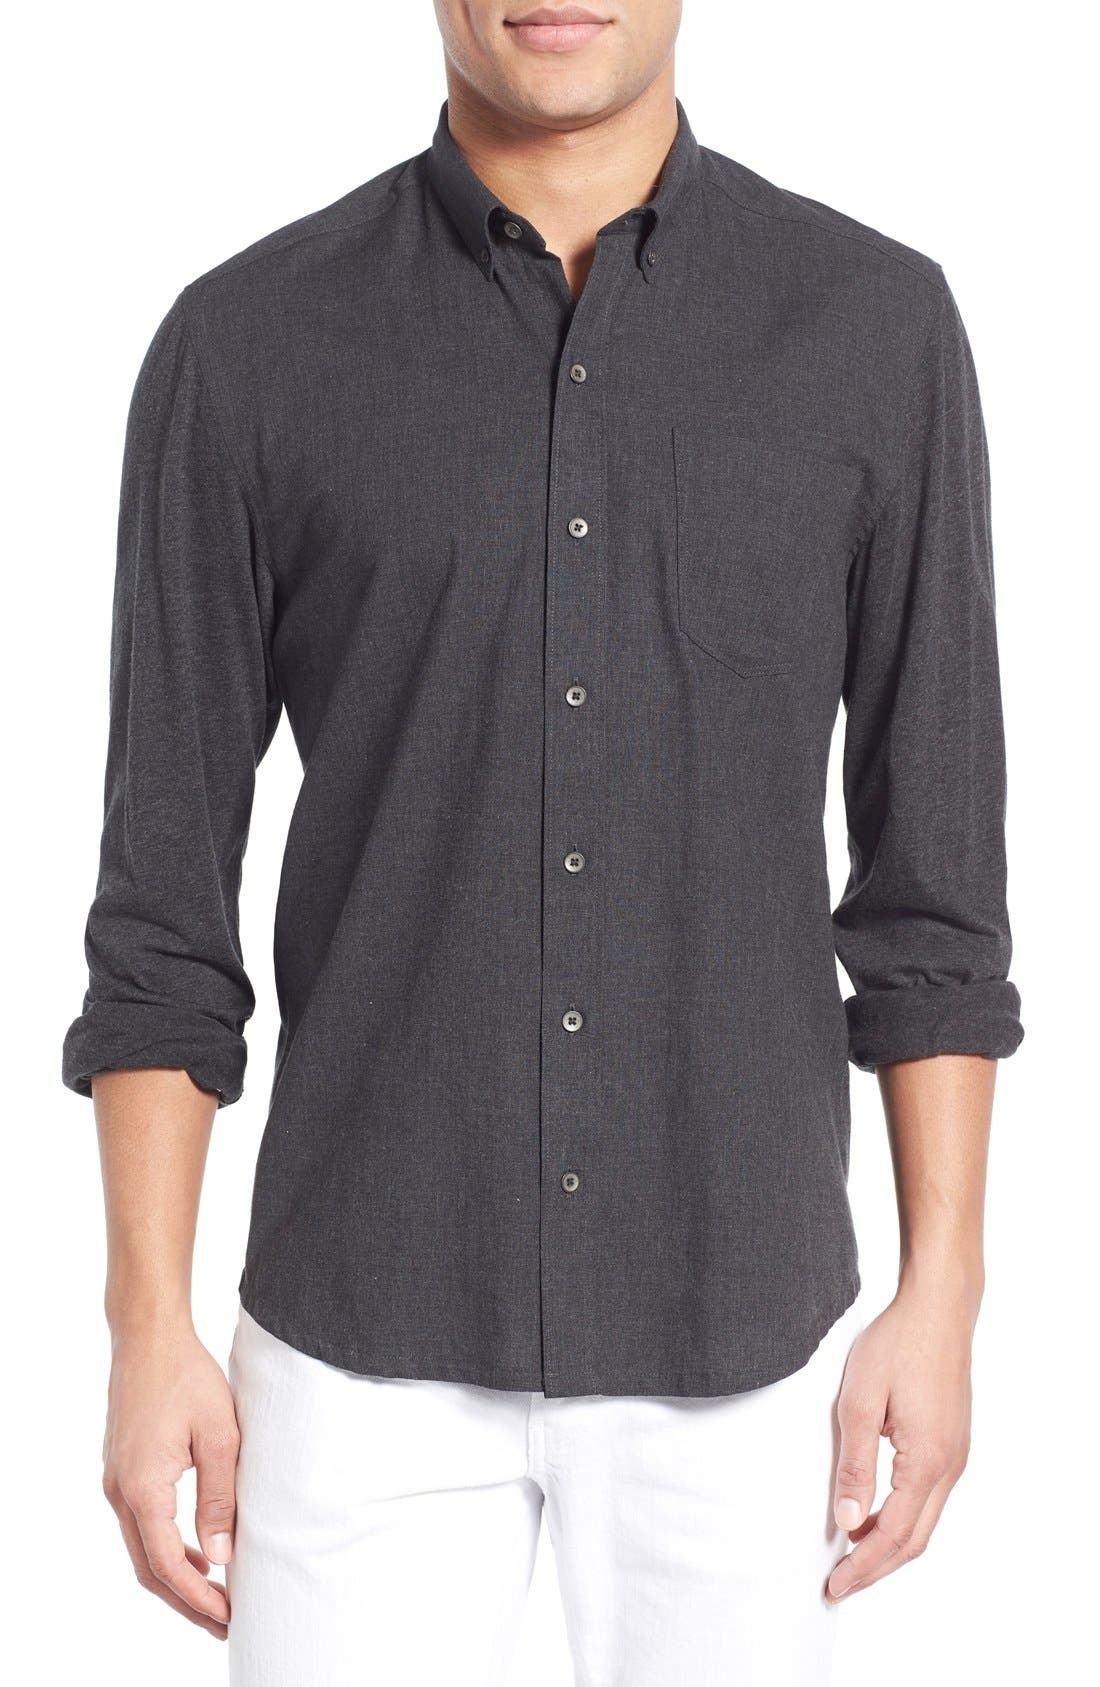 Alternate Image 1 Selected - W.R.K 'Reworked' Trim Fit Sport Shirt